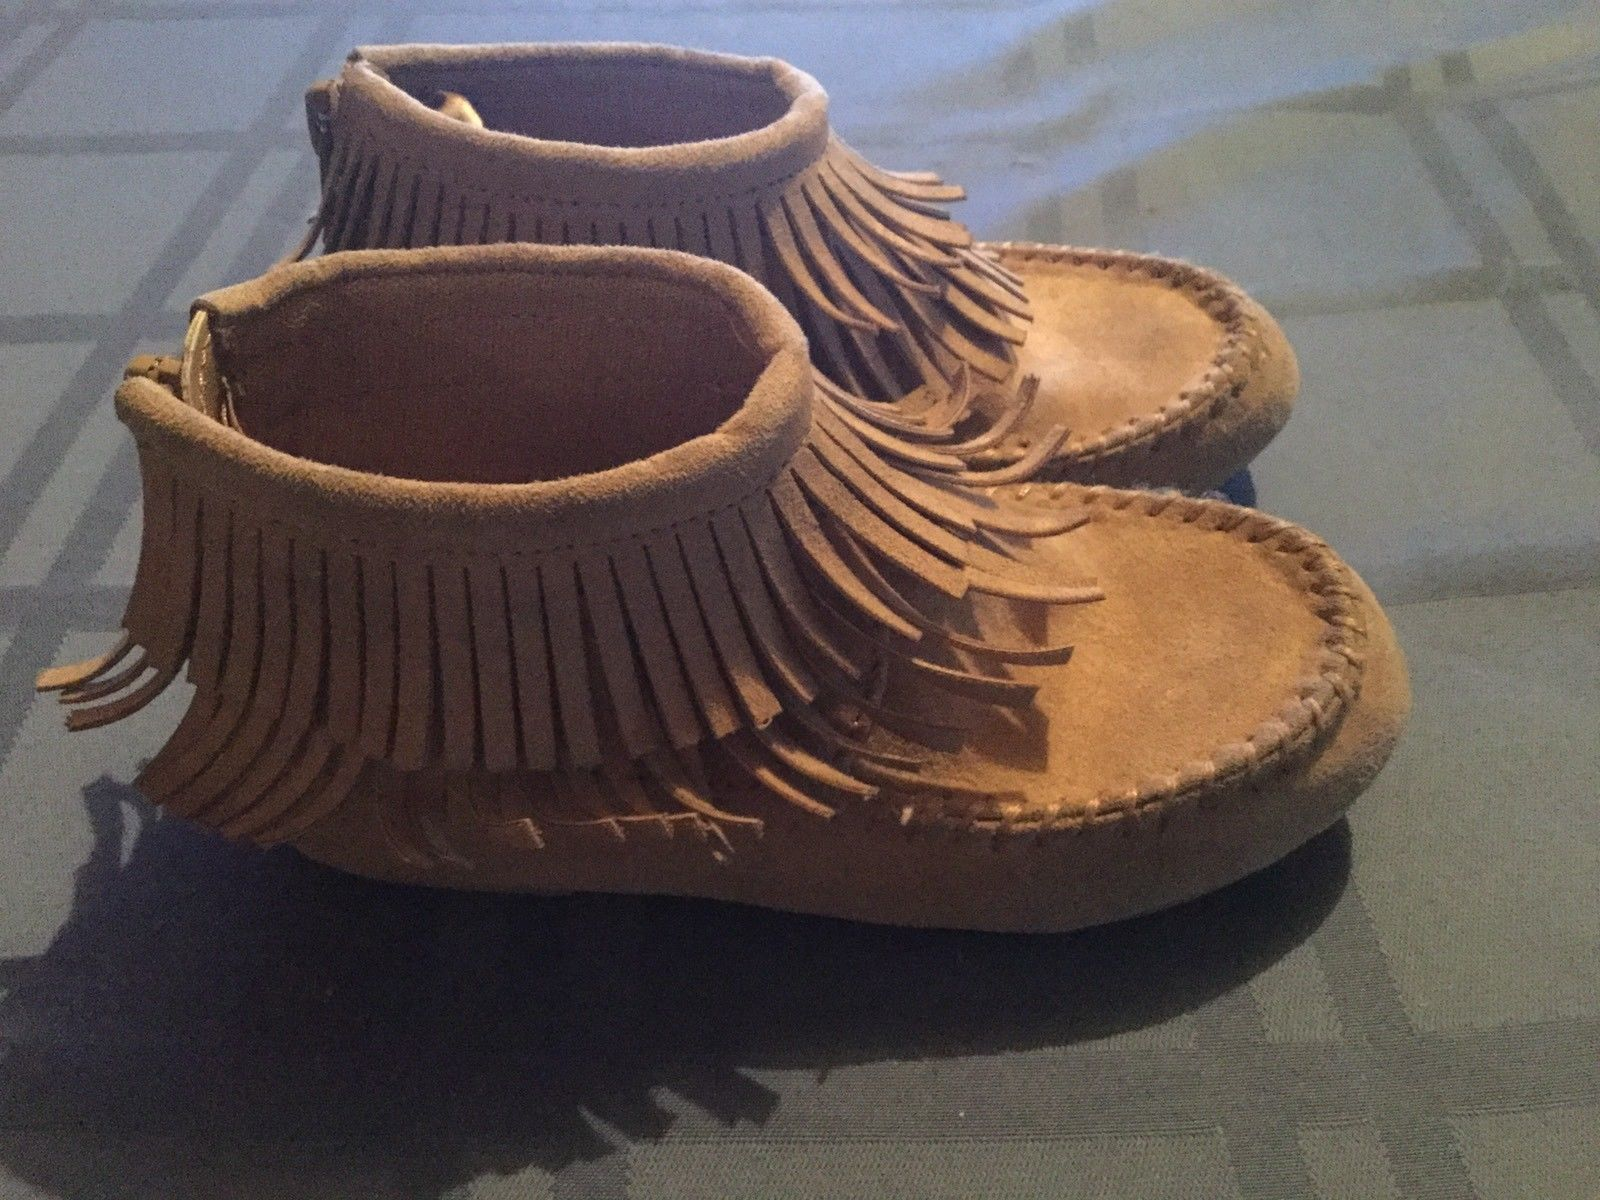 ee7dd36b180f5 Girls Toddler Size 9 Old Navy boots tan and 37 similar items